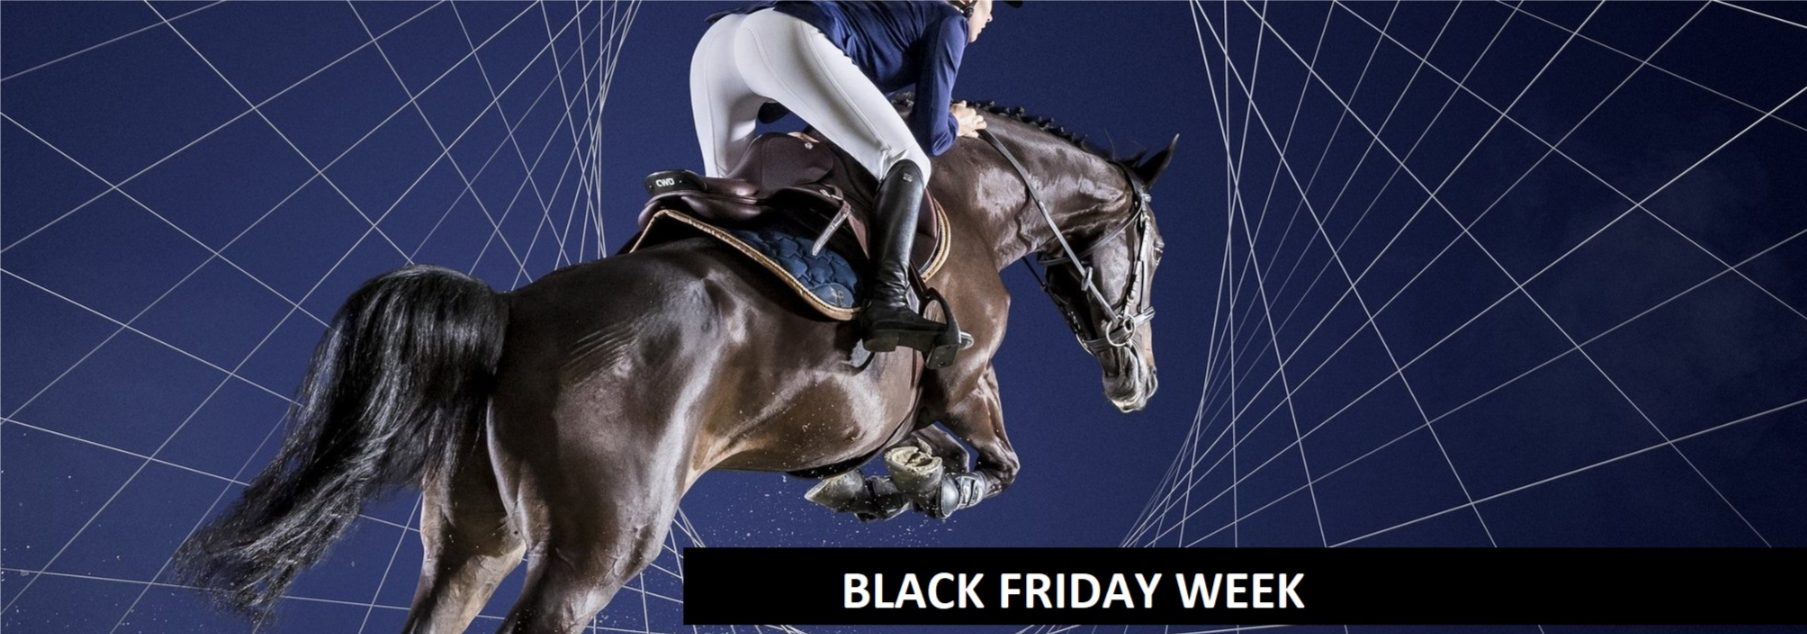 black friday equitation cheval